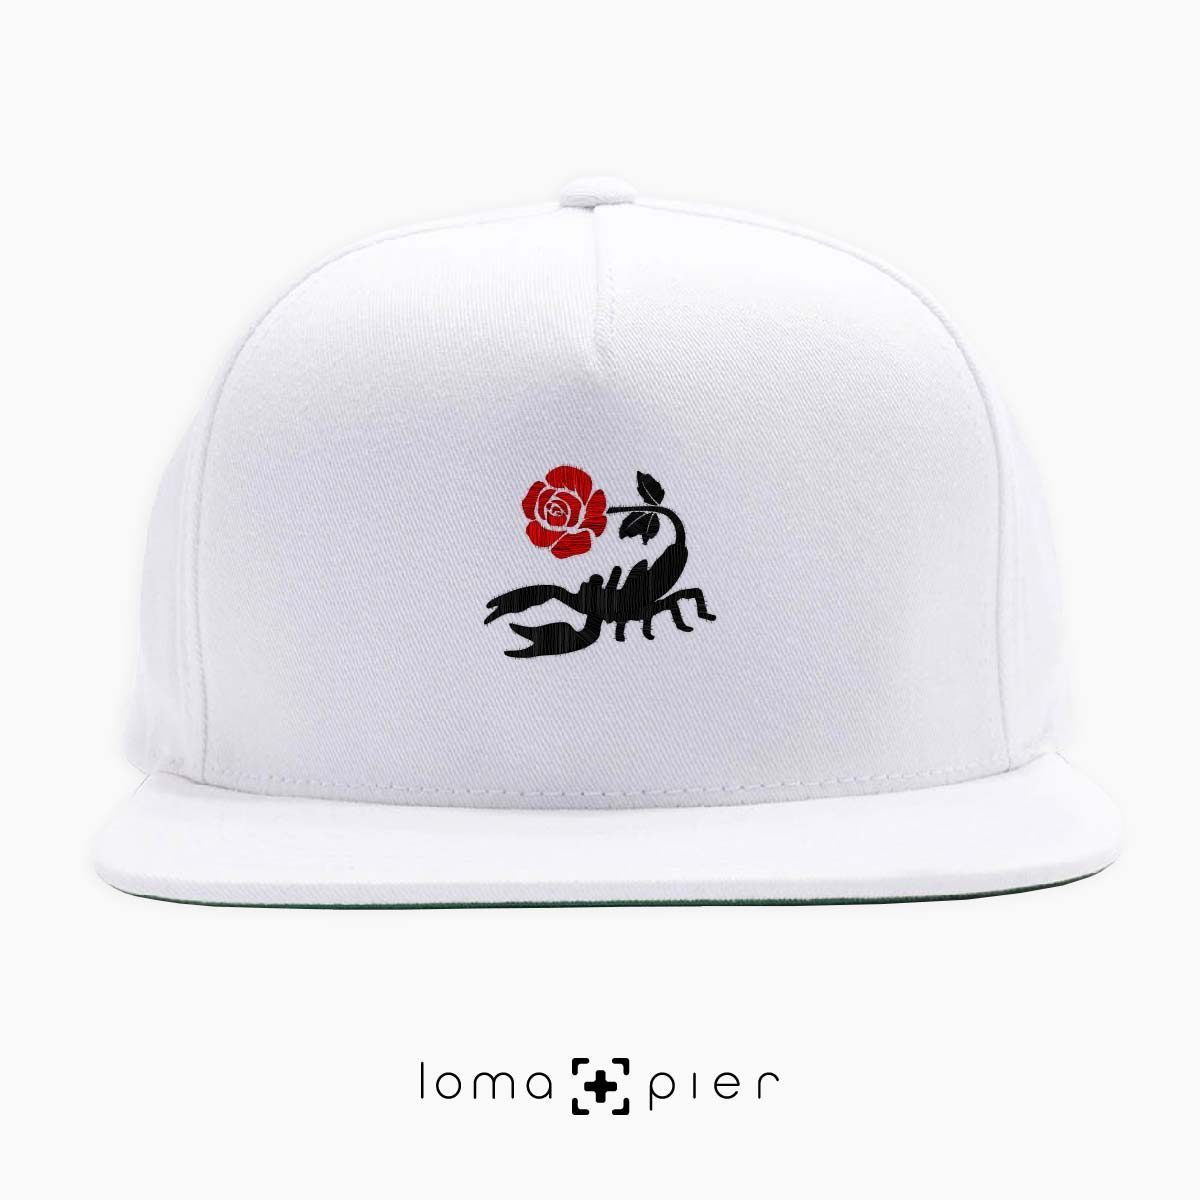 SCORPION ROSE icon embroidered on a white classic snapback hat with multicolor thread by loma+pier hat store